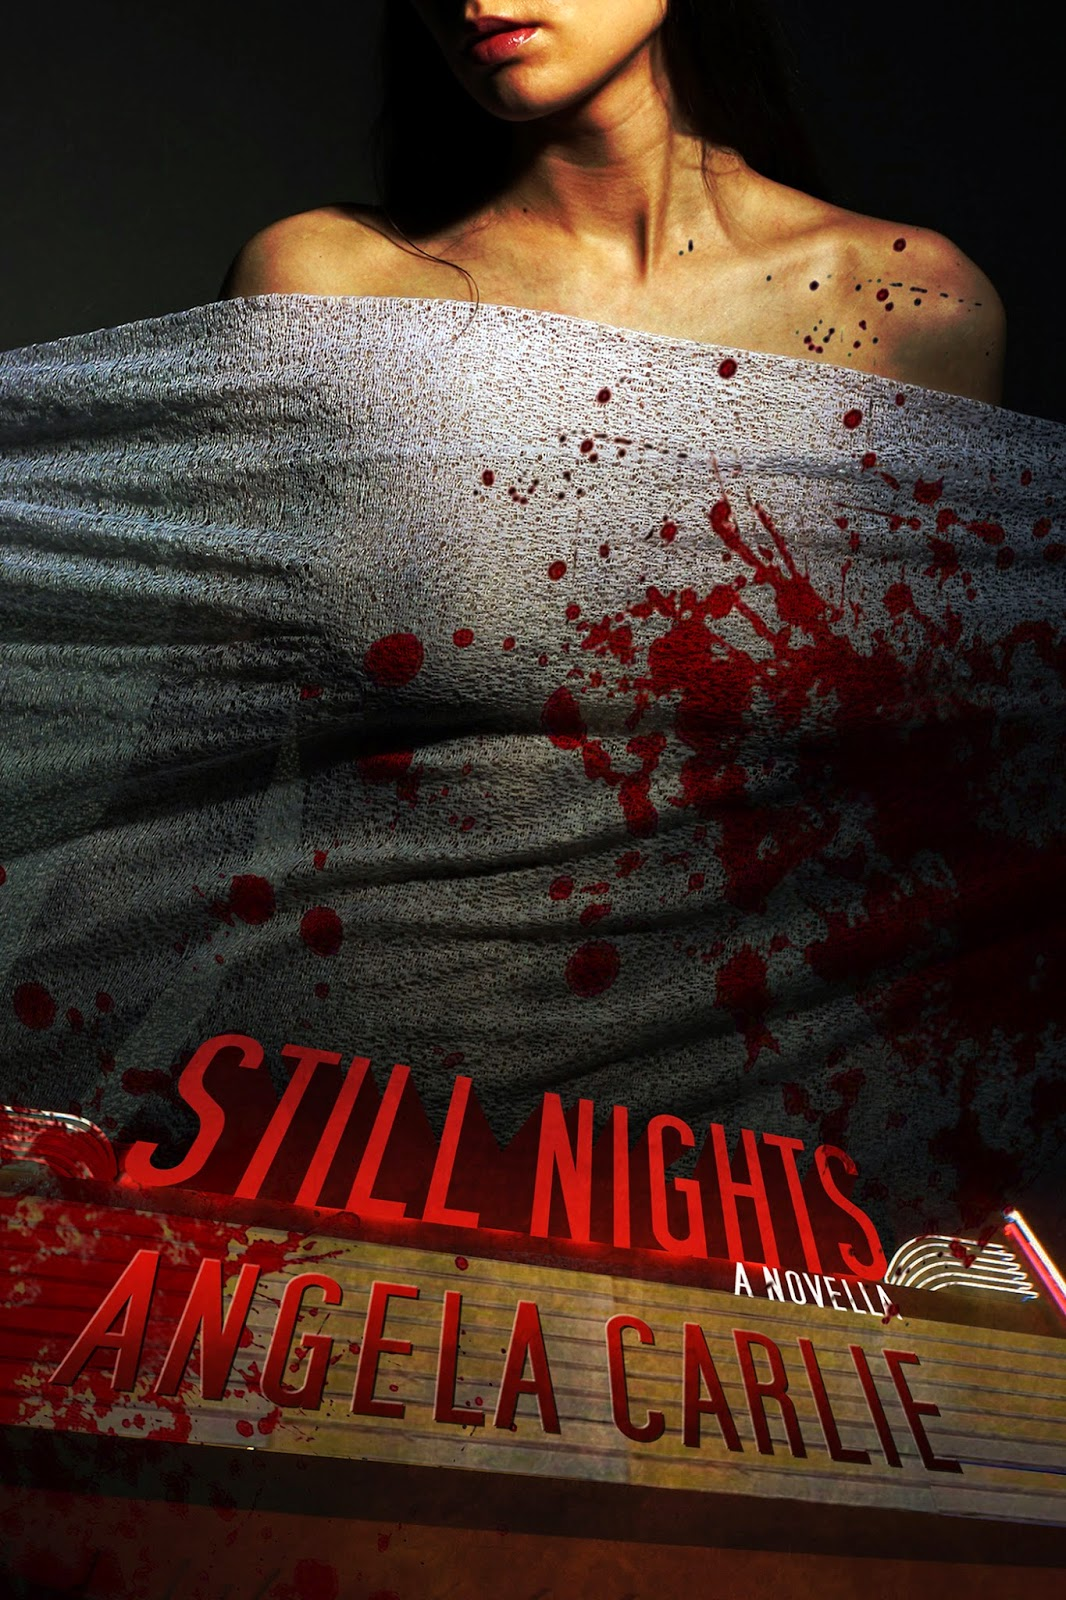 http://www.amazon.com/Still-Nights-Velvet-Black-Stories-ebook/dp/B00HKZVDVS/ref=pd_sim_kstore_1?ie=UTF8&refRID=0F82VZVQMZ6TEF7GVW4H